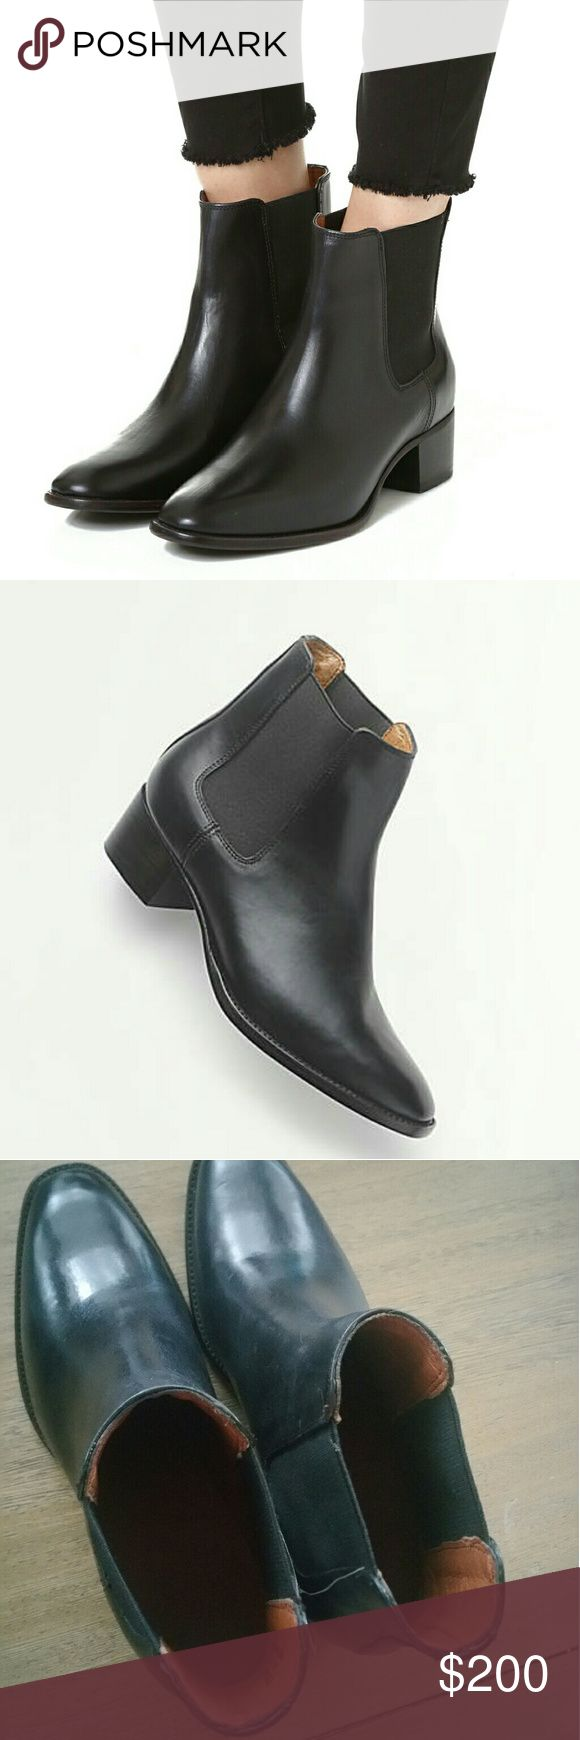 FRYE Dara Chelsea Womens Boot Size 6B Black 100% authentic Frye brand item, new without box or tags. Originally purchased in U.S. retail location,   was store display. First 2 pictures are from manufacturer, for reference use only. Actual product photos are at the end. Color may vary due to lighting / screen calibration. Condition is new but just to be sure, please view pictures for exact condition. Item has some scratches at the bottom and some very light marks on leather, but still looks…